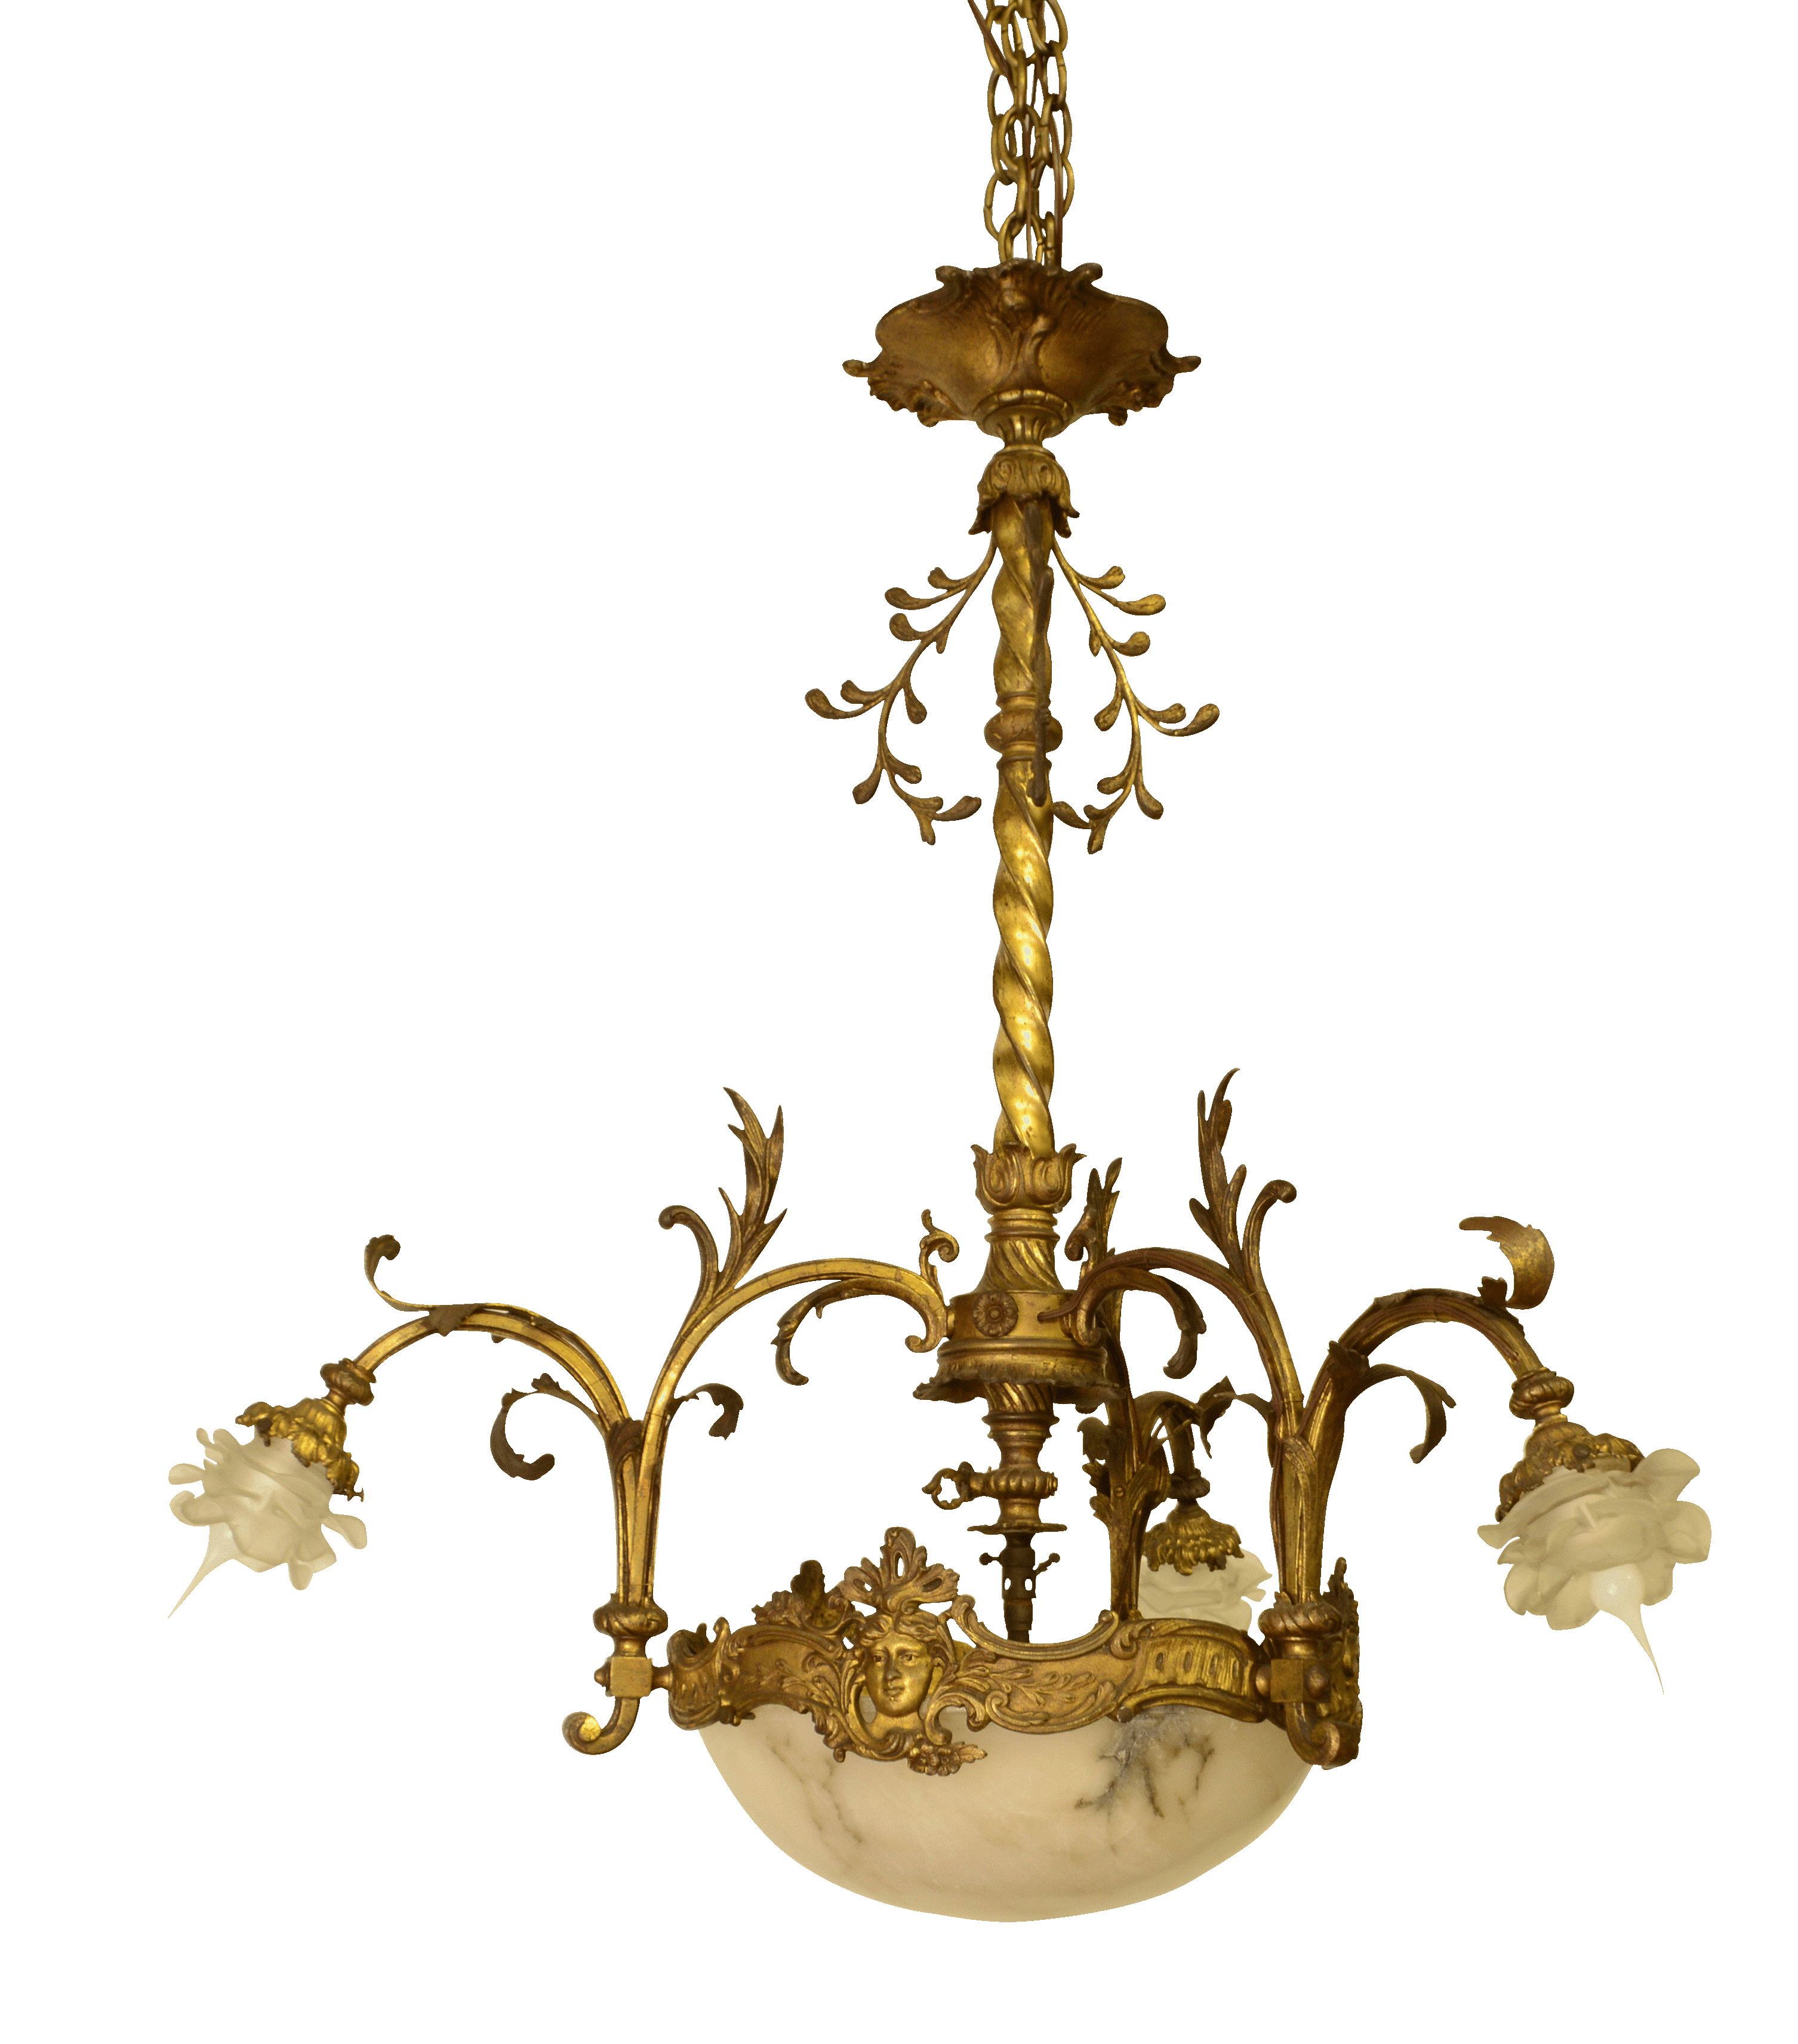 New awesome alabaster chandelier french alabaster chandelier new new awesome alabaster chandelier french alabaster chandelier new in stock antique 19th century french glass arubaitofo Choice Image